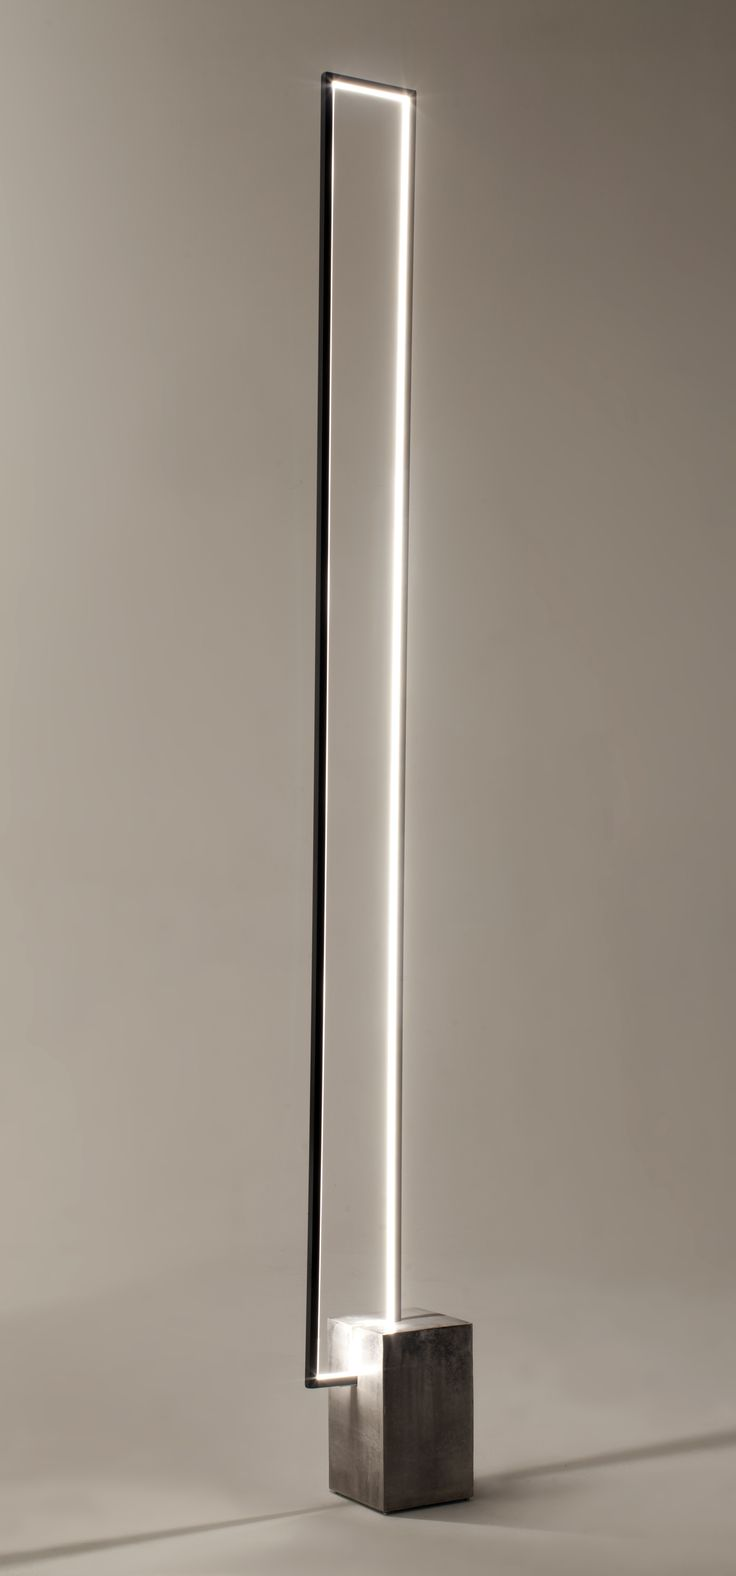 The Mire : a floor lamp with a clear LED light strip inside a rectangular metal frame. LED floor lamp MIRÉ LT - CINIER Radiateurs Contemporains (PSCBath)